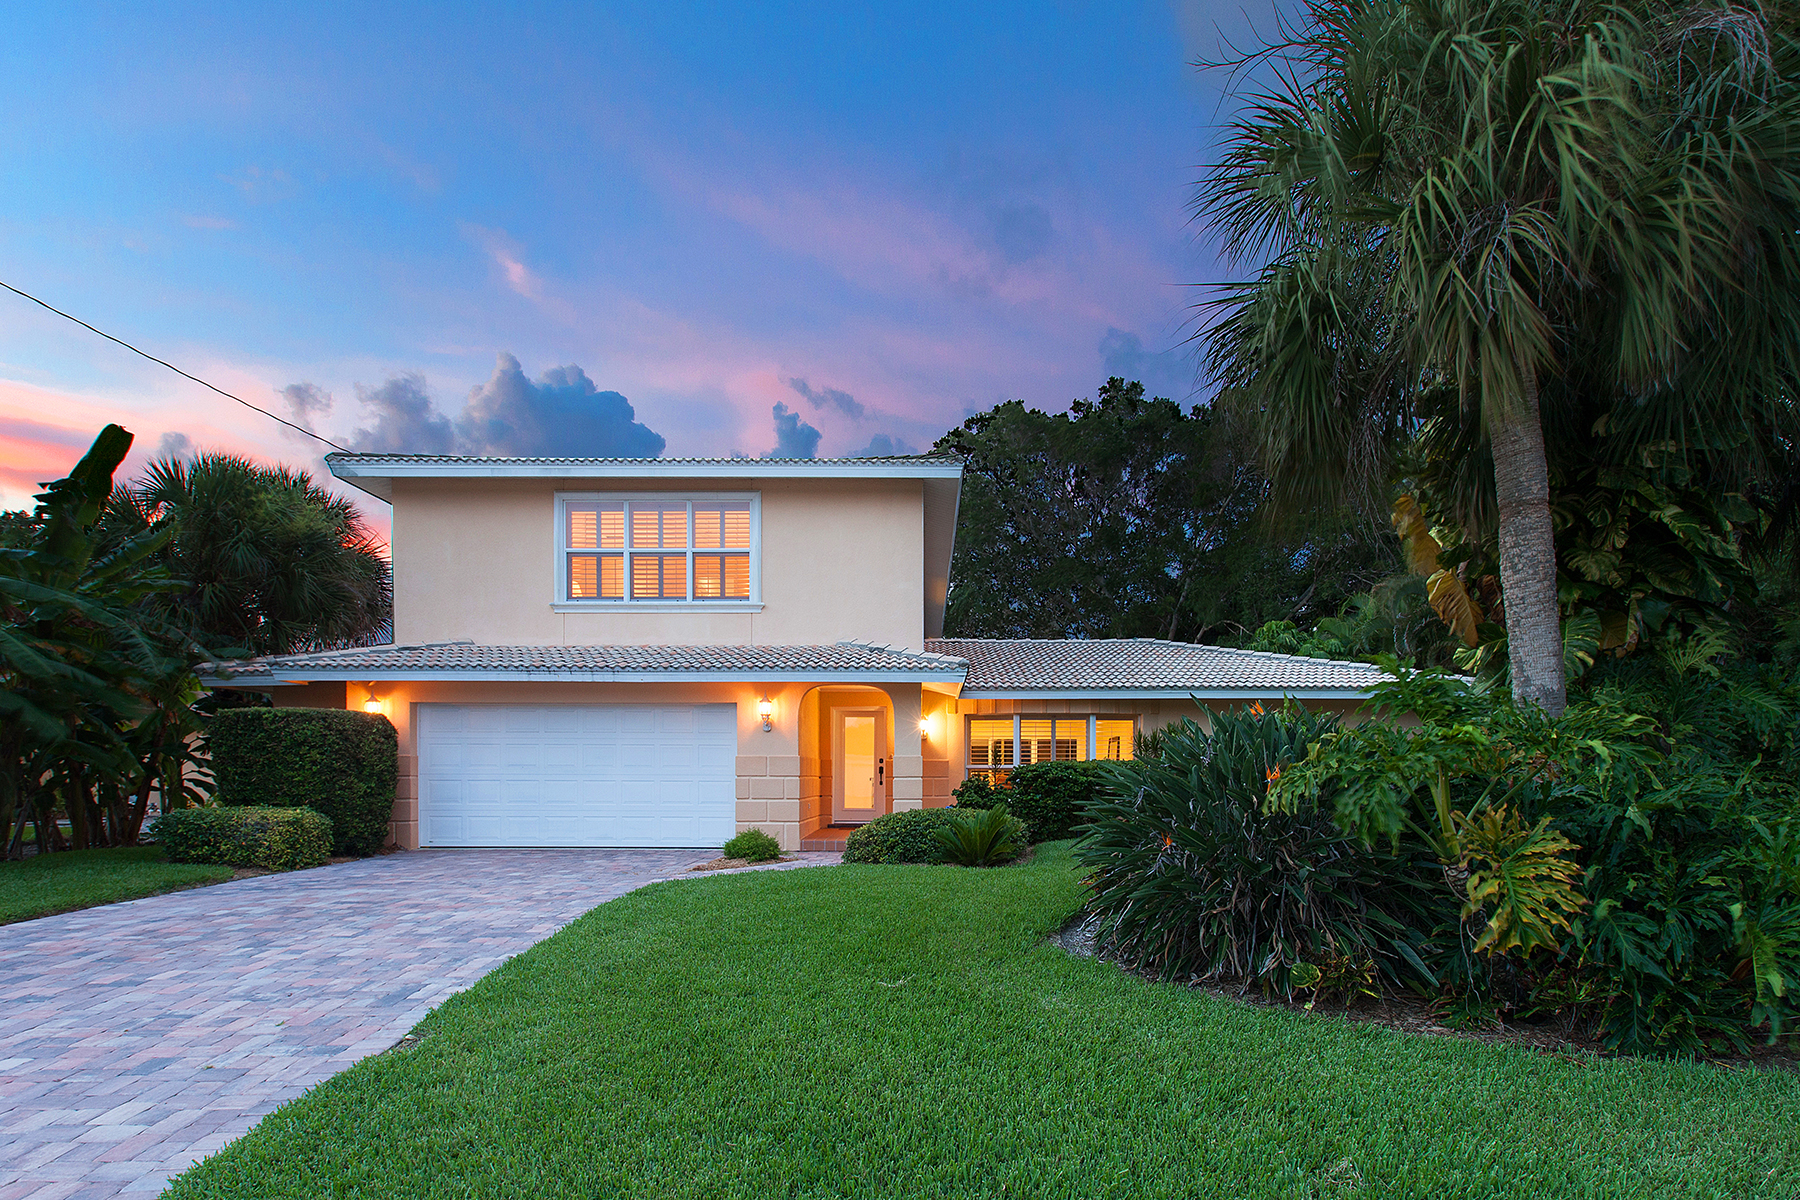 Single Family Home for Sale at SIESTA ISLES 813 Idlewild Way Sarasota, Florida 34242 United States